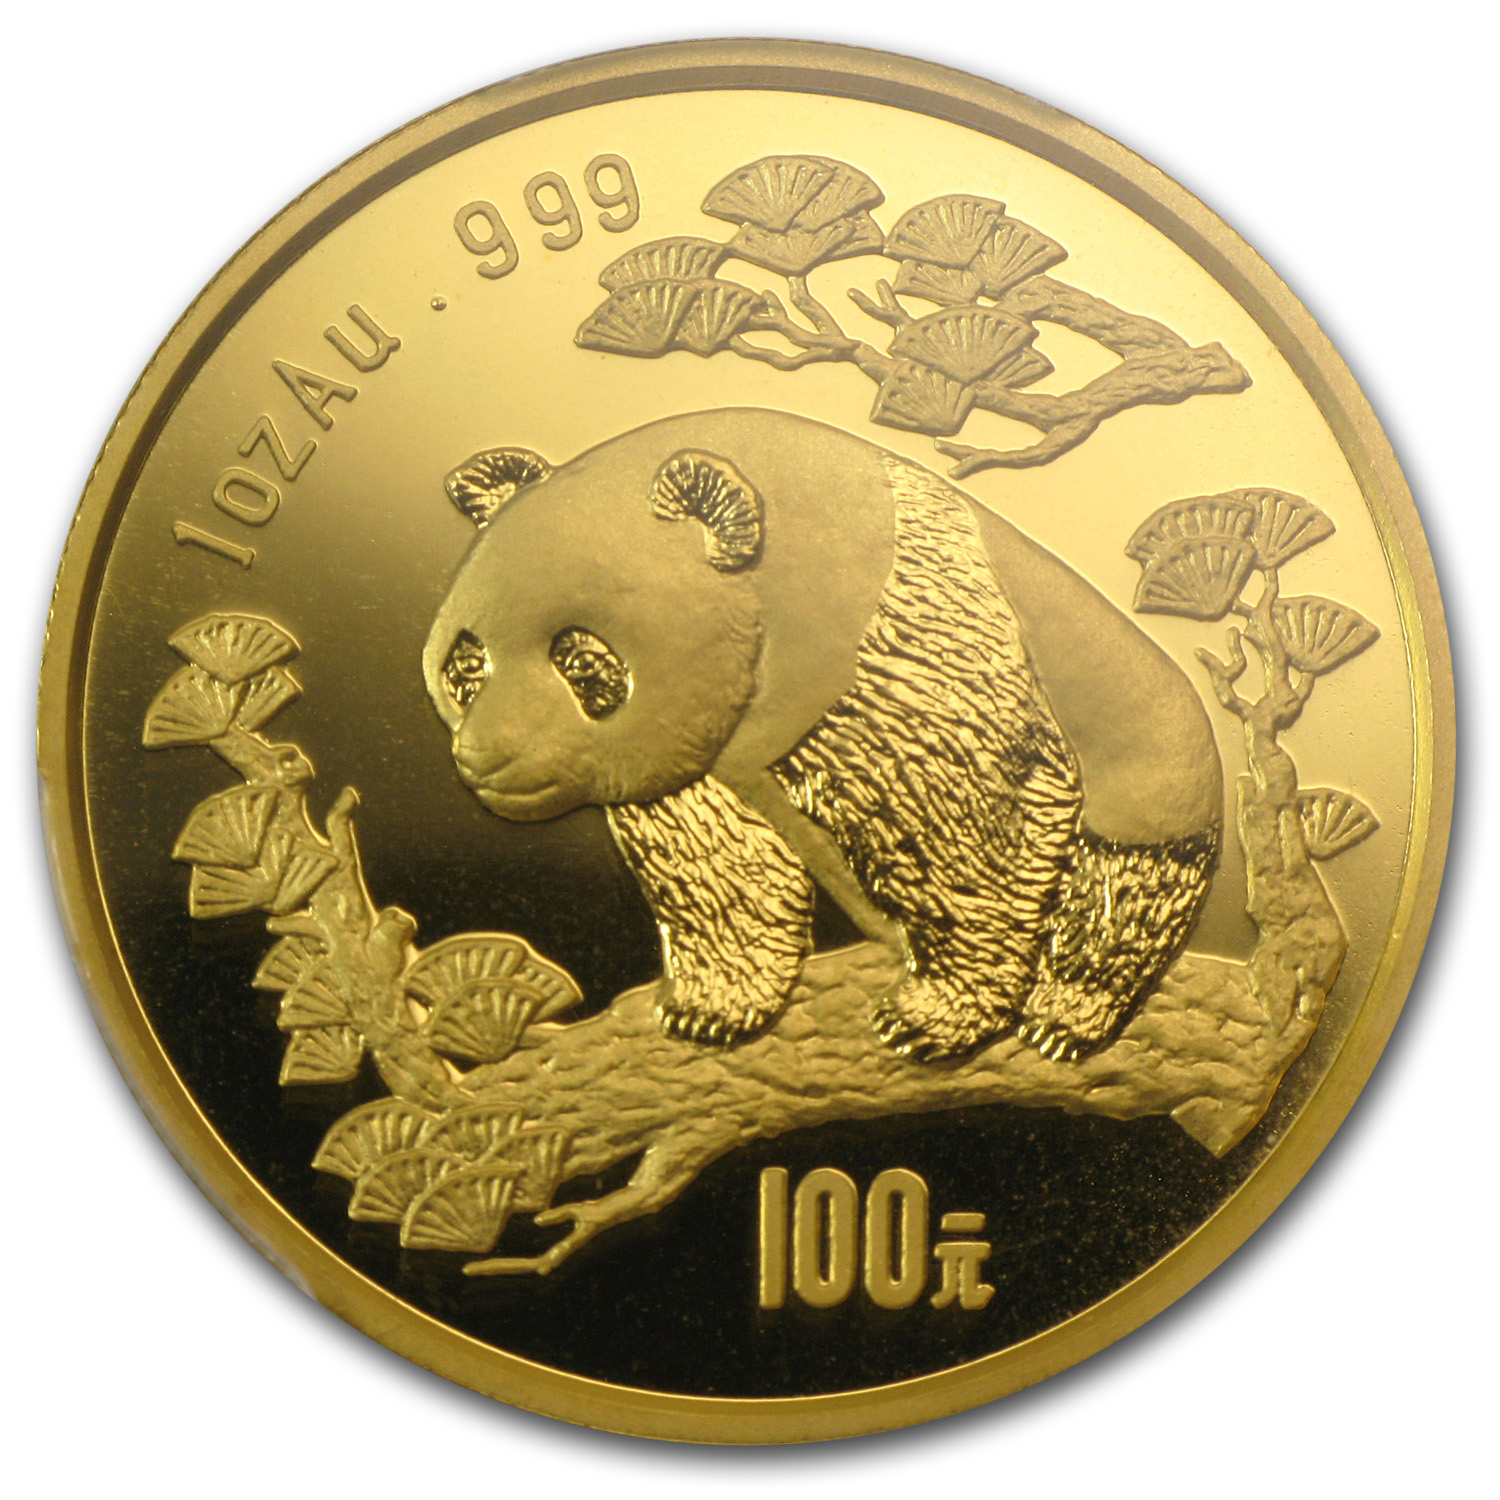 1997 1 oz Gold Chinese Panda MS-67 PCGS - Large Date